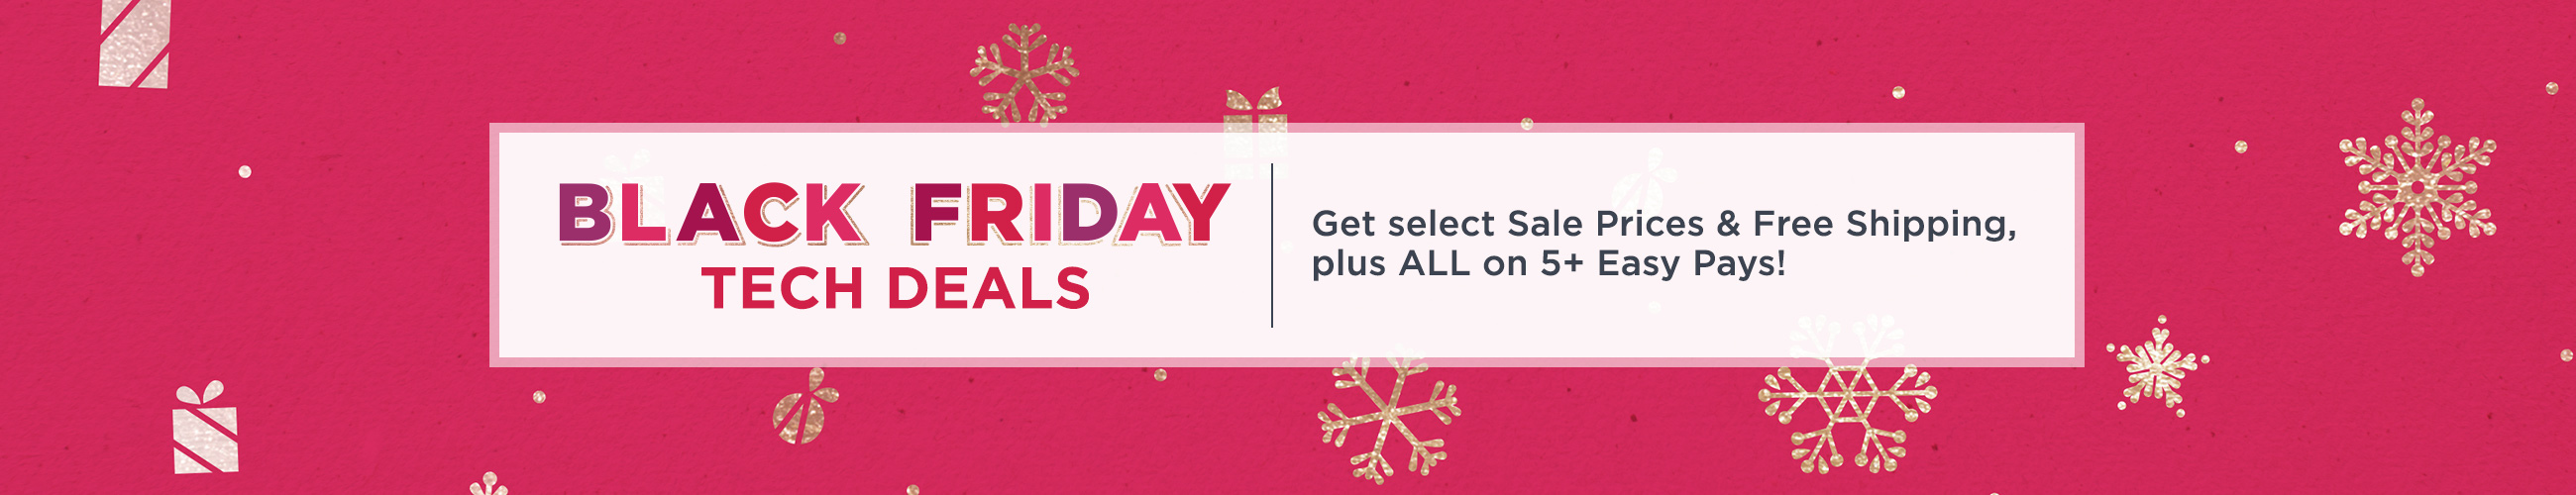 Black Friday Tech Deals  Get select Sale Prices & Free Shipping, plus ALL on 5+ Easy Pays!